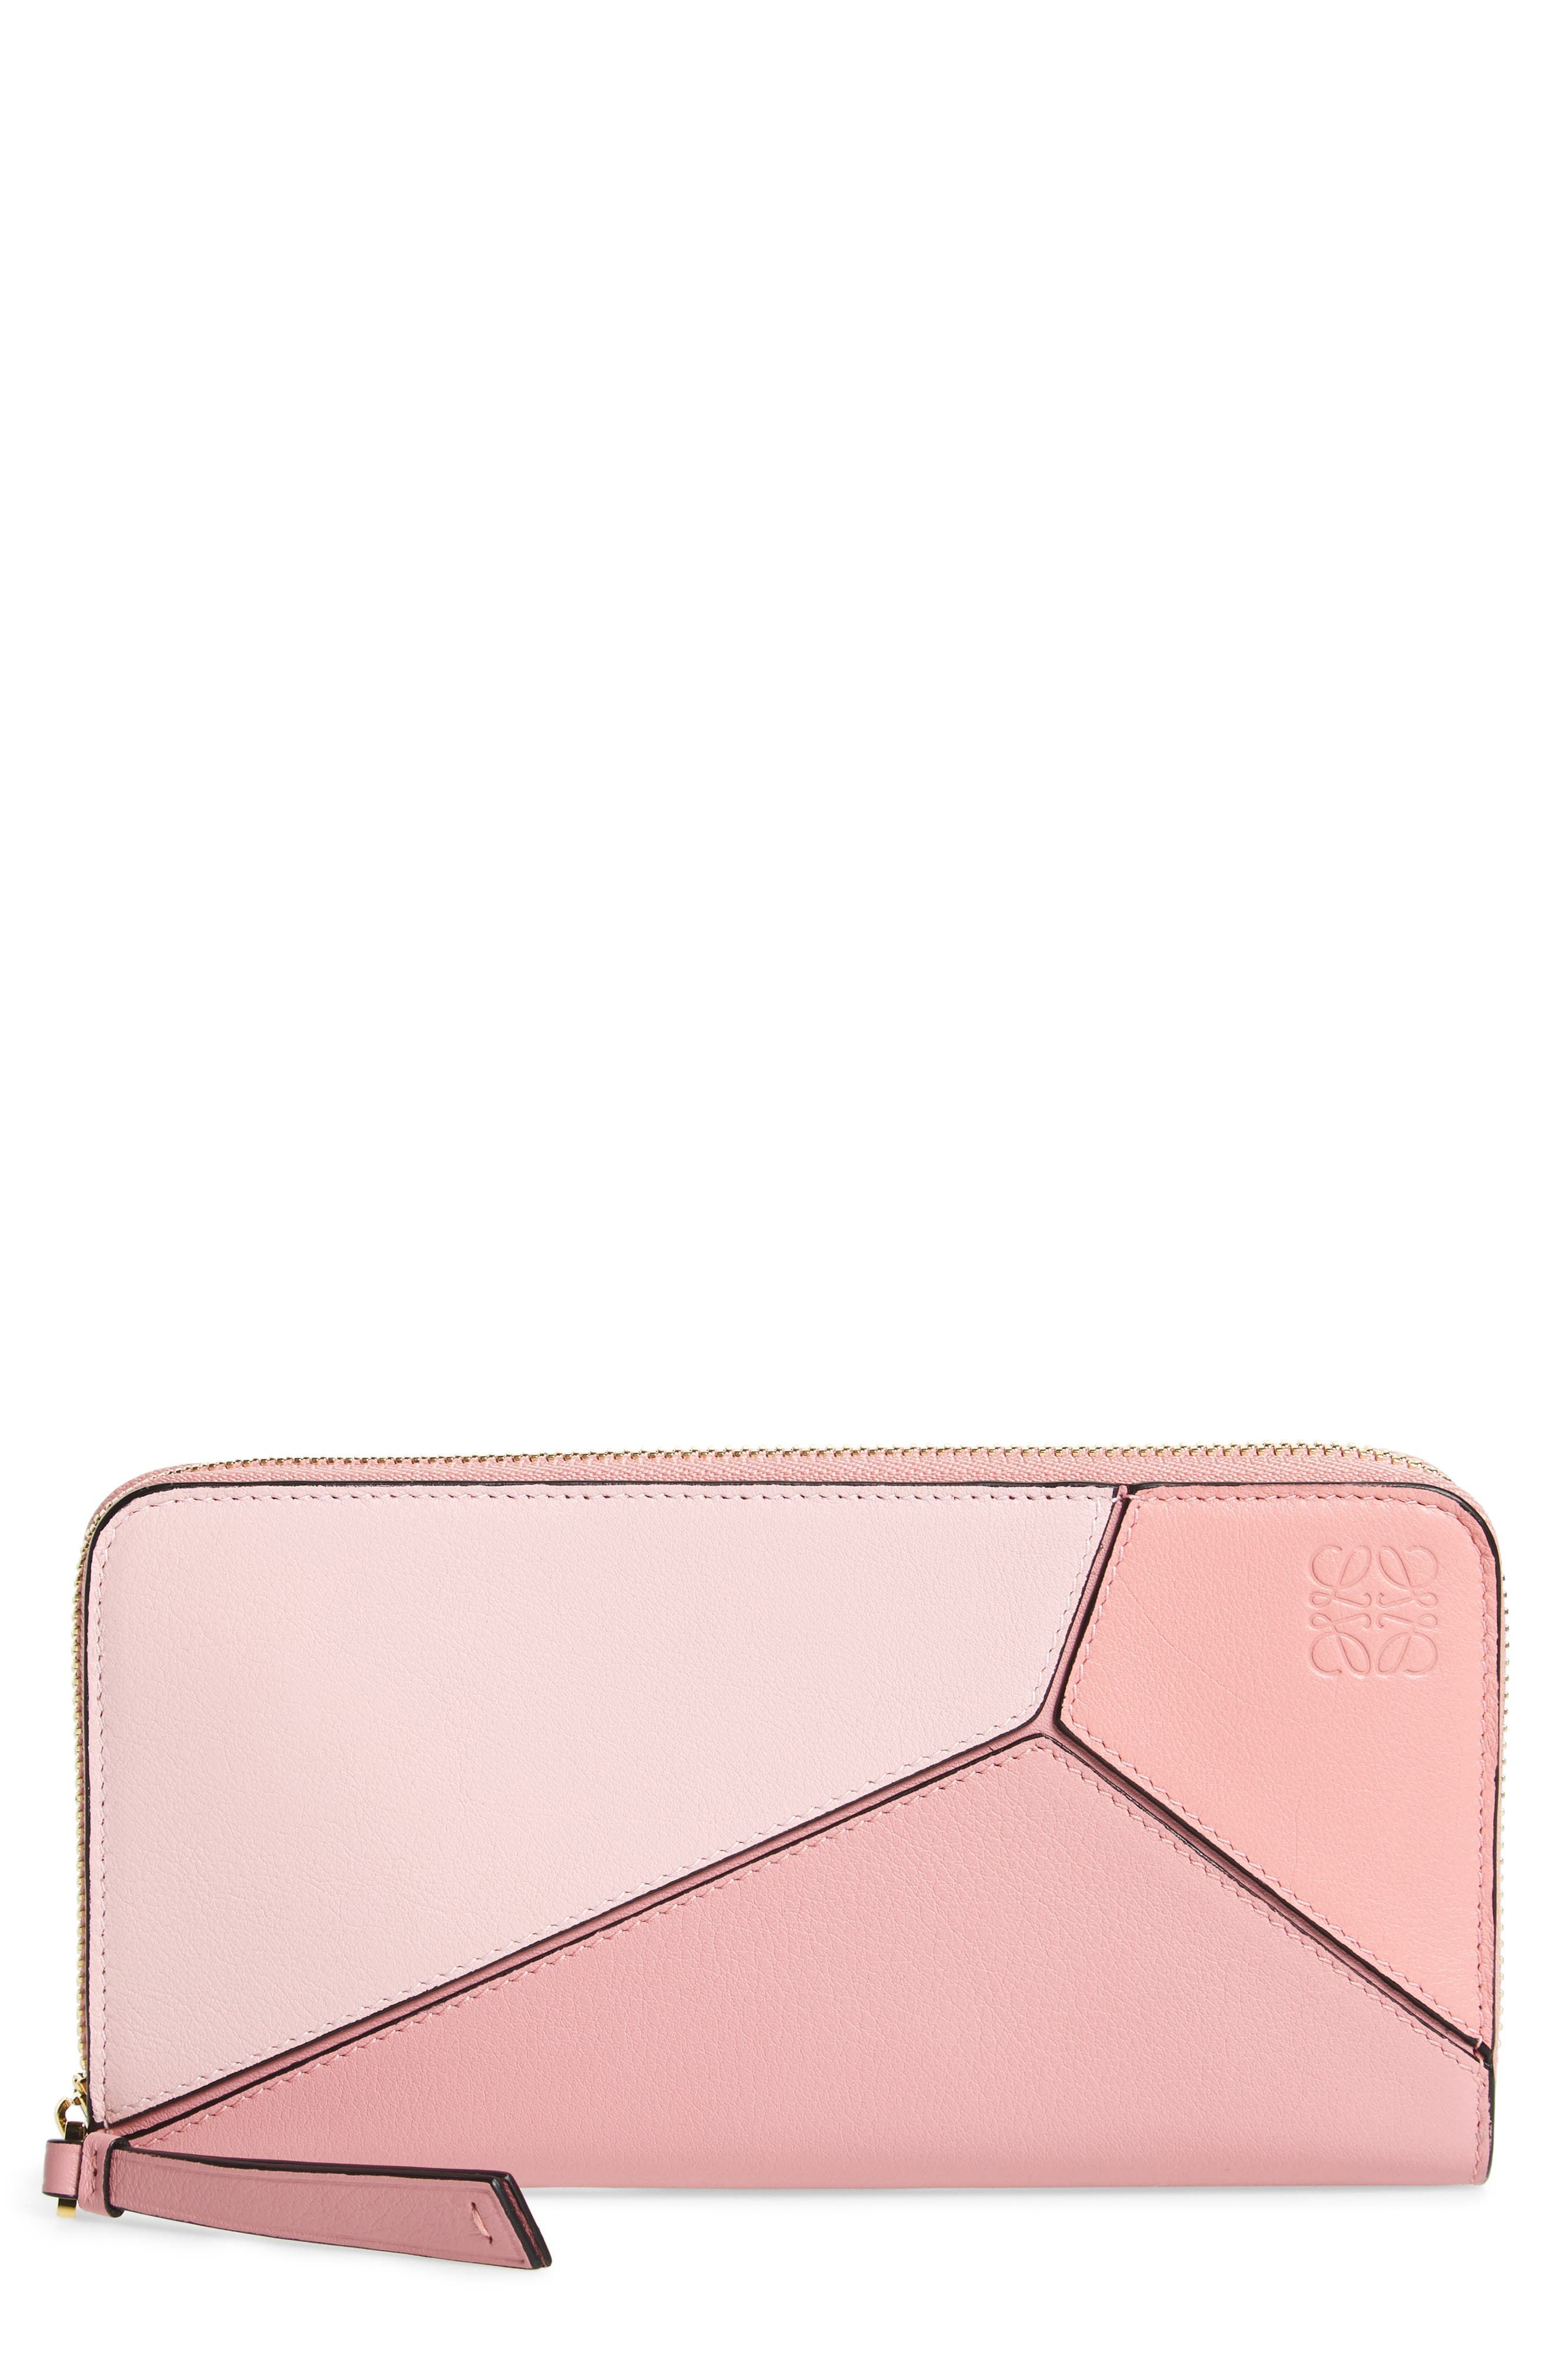 Puzzle Leather Zip Around Wallet,                         Main,                         color, Soft Pink/ Candy/ Dark Pink